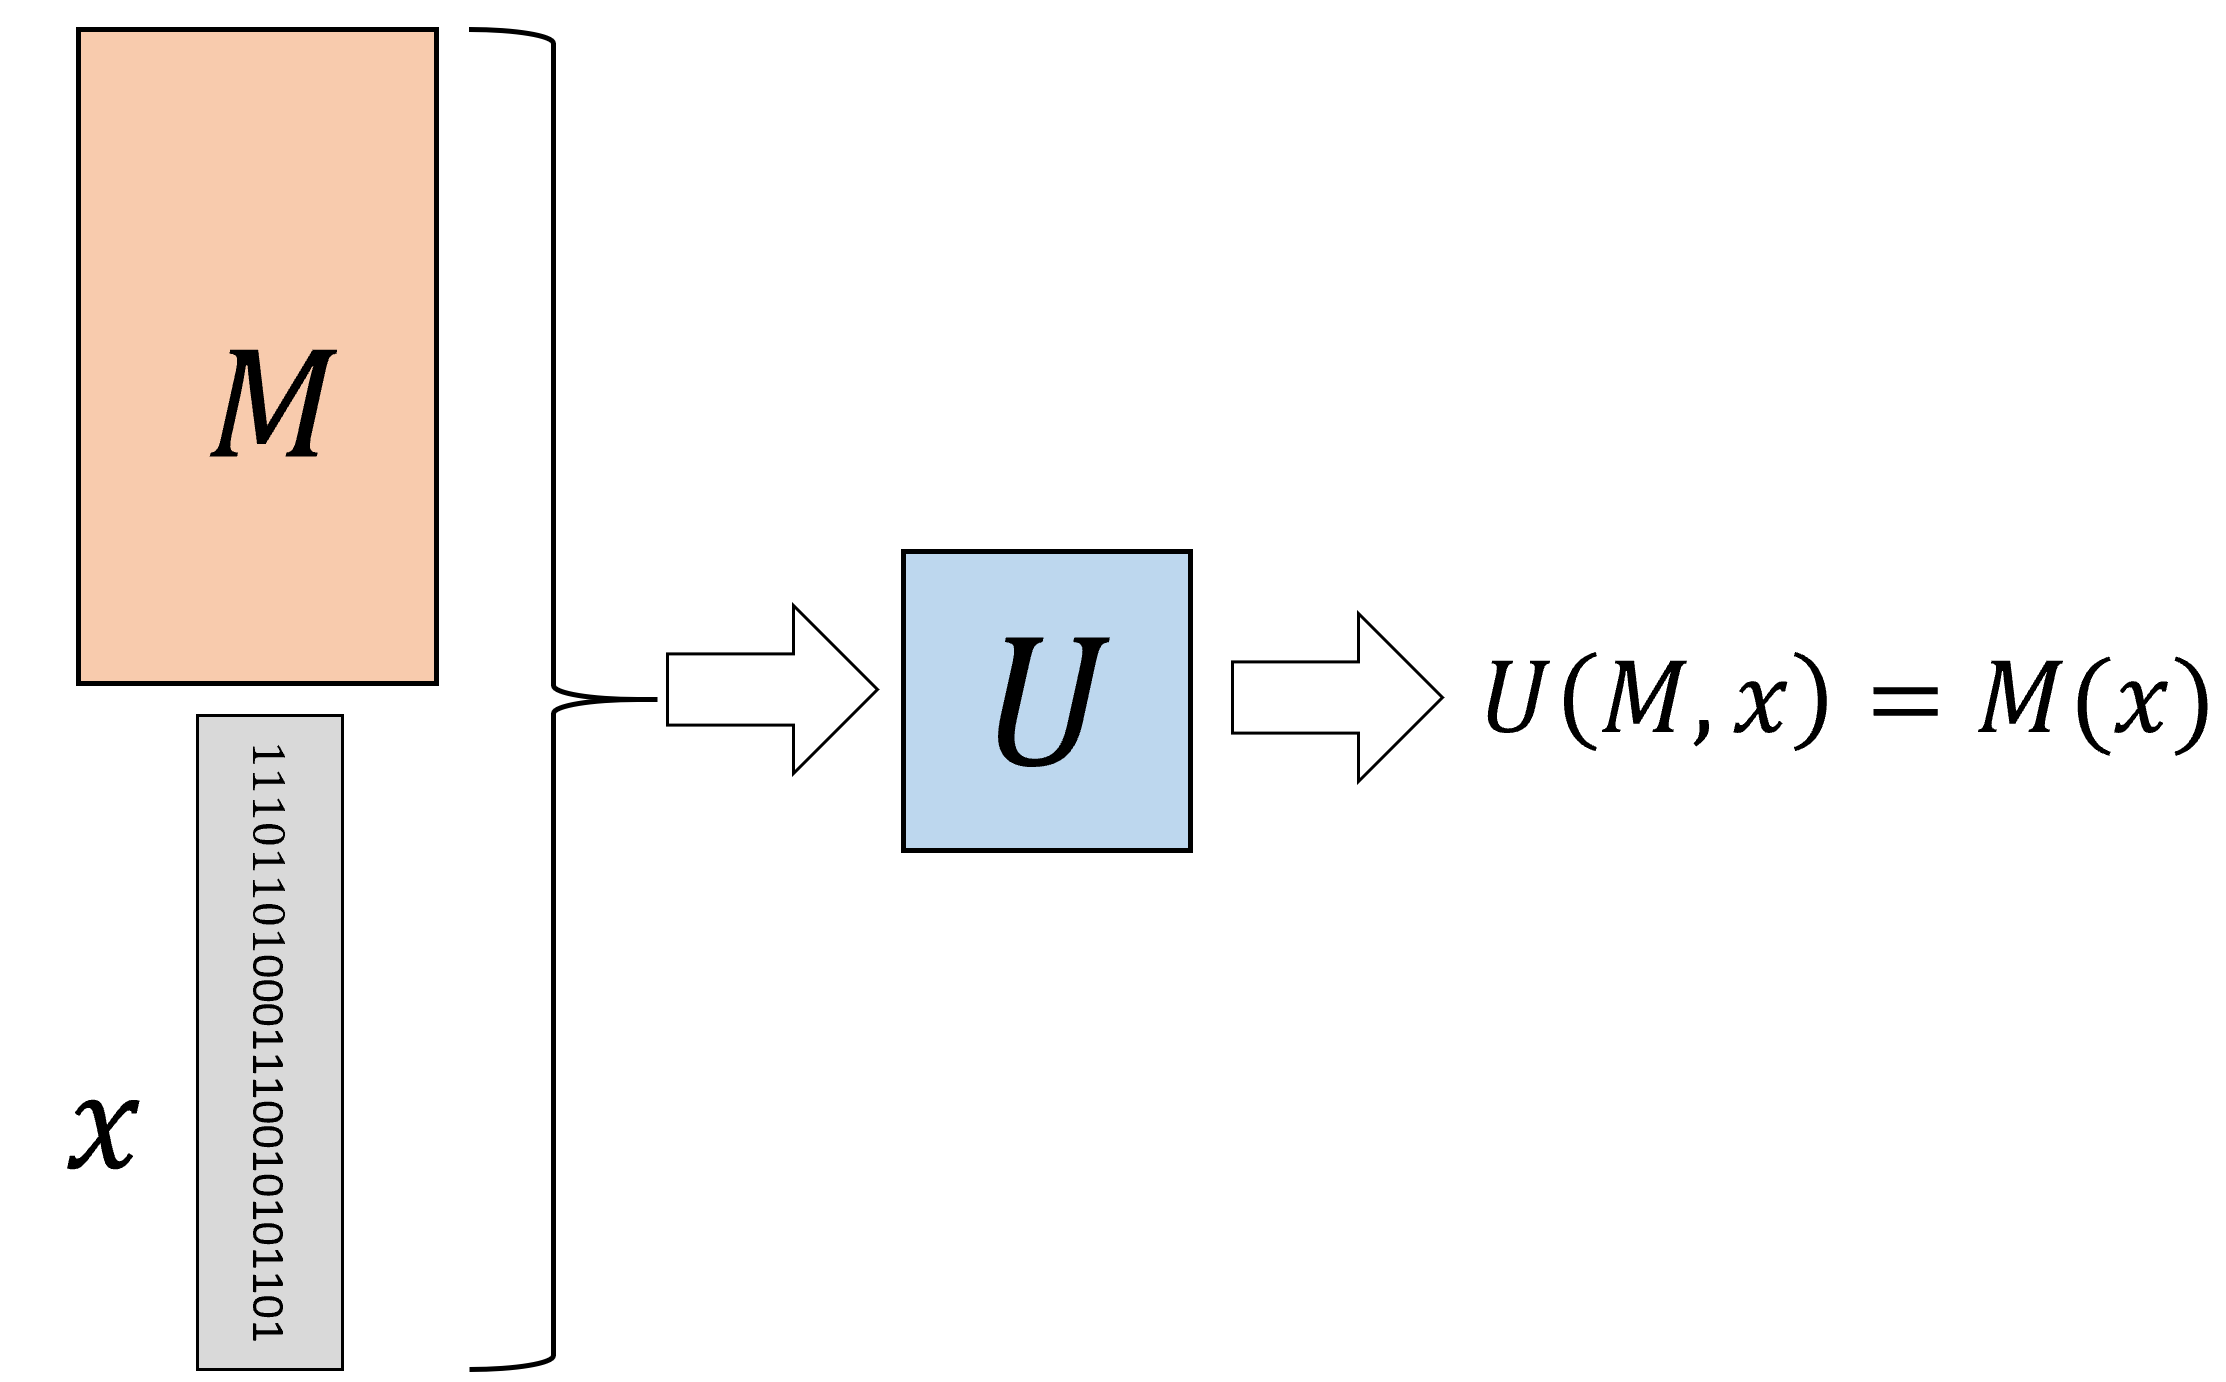 A Universal Turing Machine is a single Turing Machine U that can evaluate, given input the (description as a string of) arbitrary Turing machine M and input x, the output of M on x. In contrast to the universal circuit depicted in , the machine M can be much more complex (e.g., more states or tape alphabet symbols) than U.